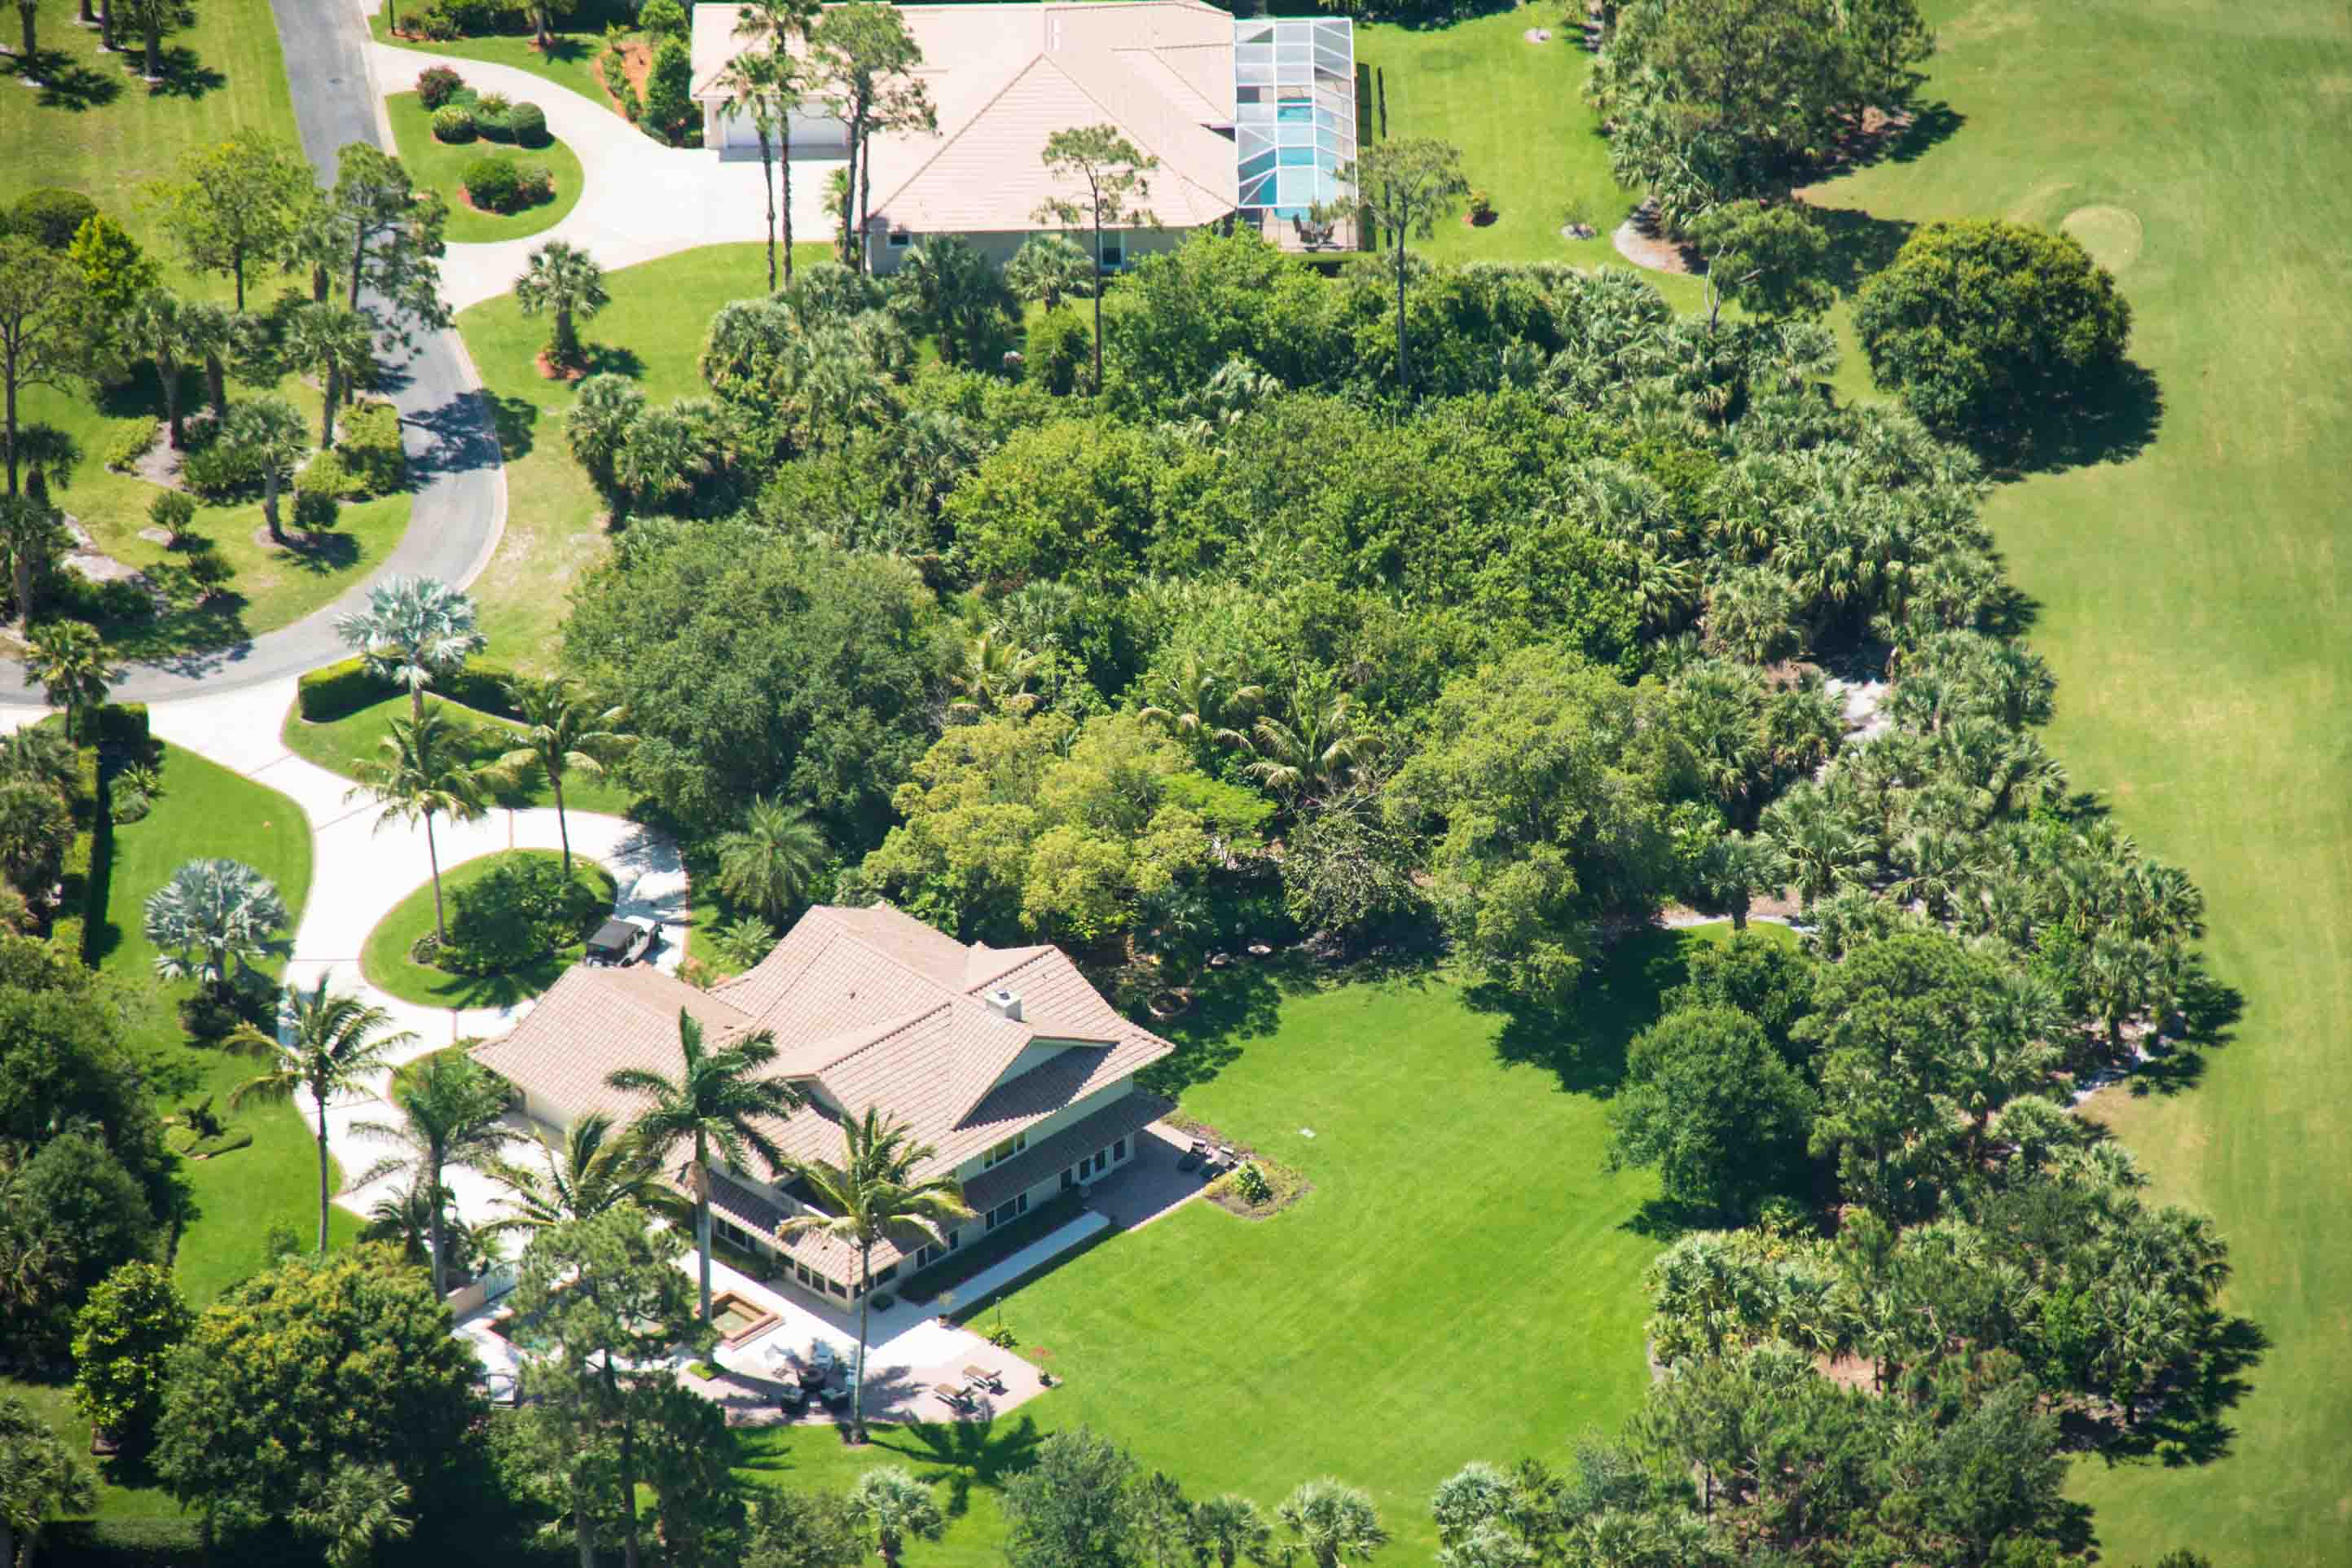 Land for Sale at Homesite in Bent Pine With Golf View 5865 Turnberry Ln Vero Beach, Florida 32967 United States